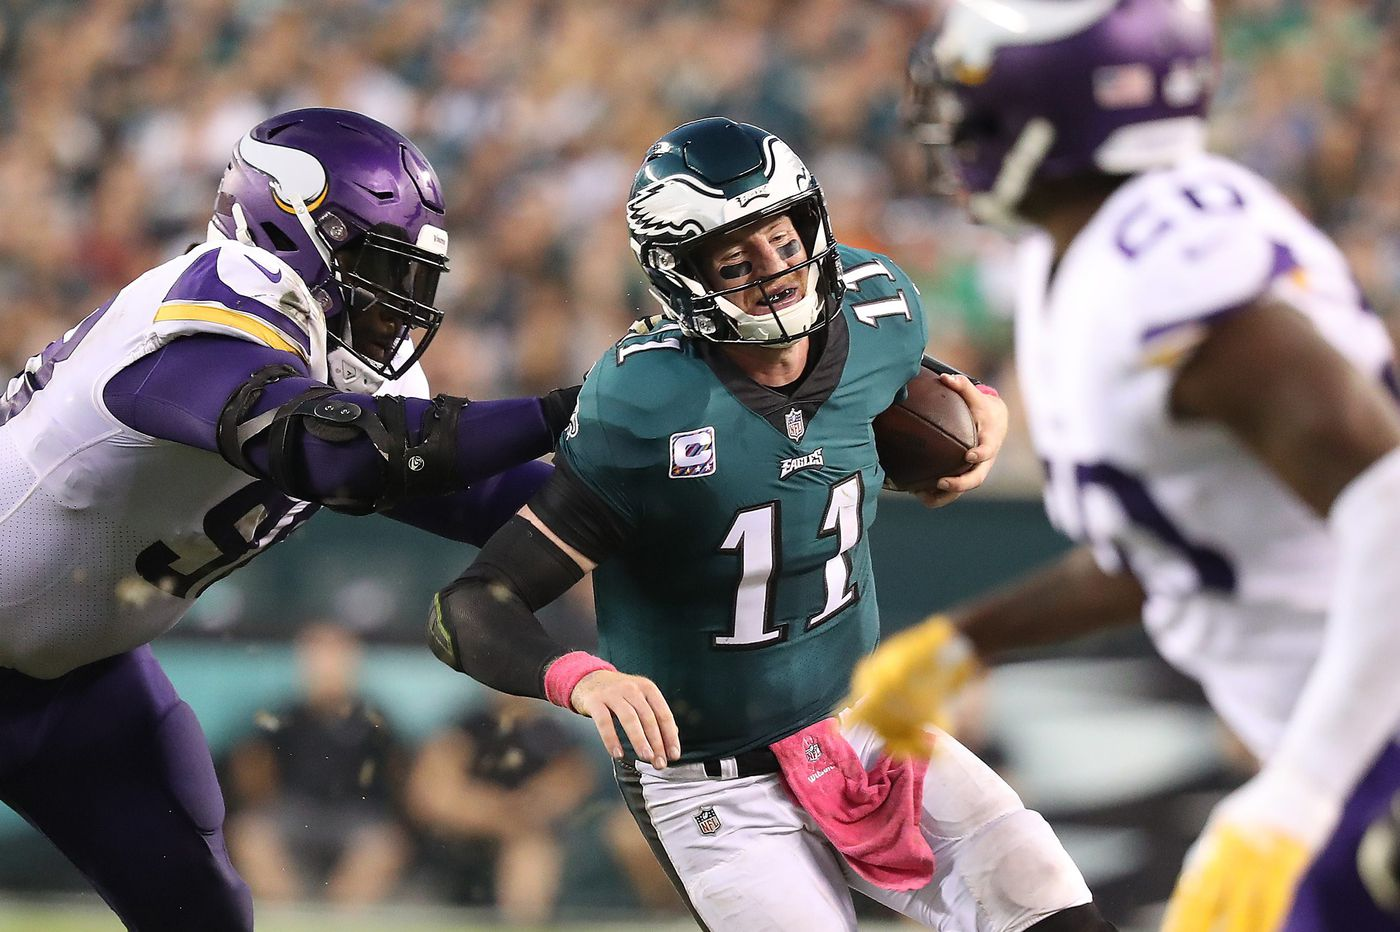 The Eagles' fastest fix? That's easy: Carson Wentz has to be himself again | Mike Sielski